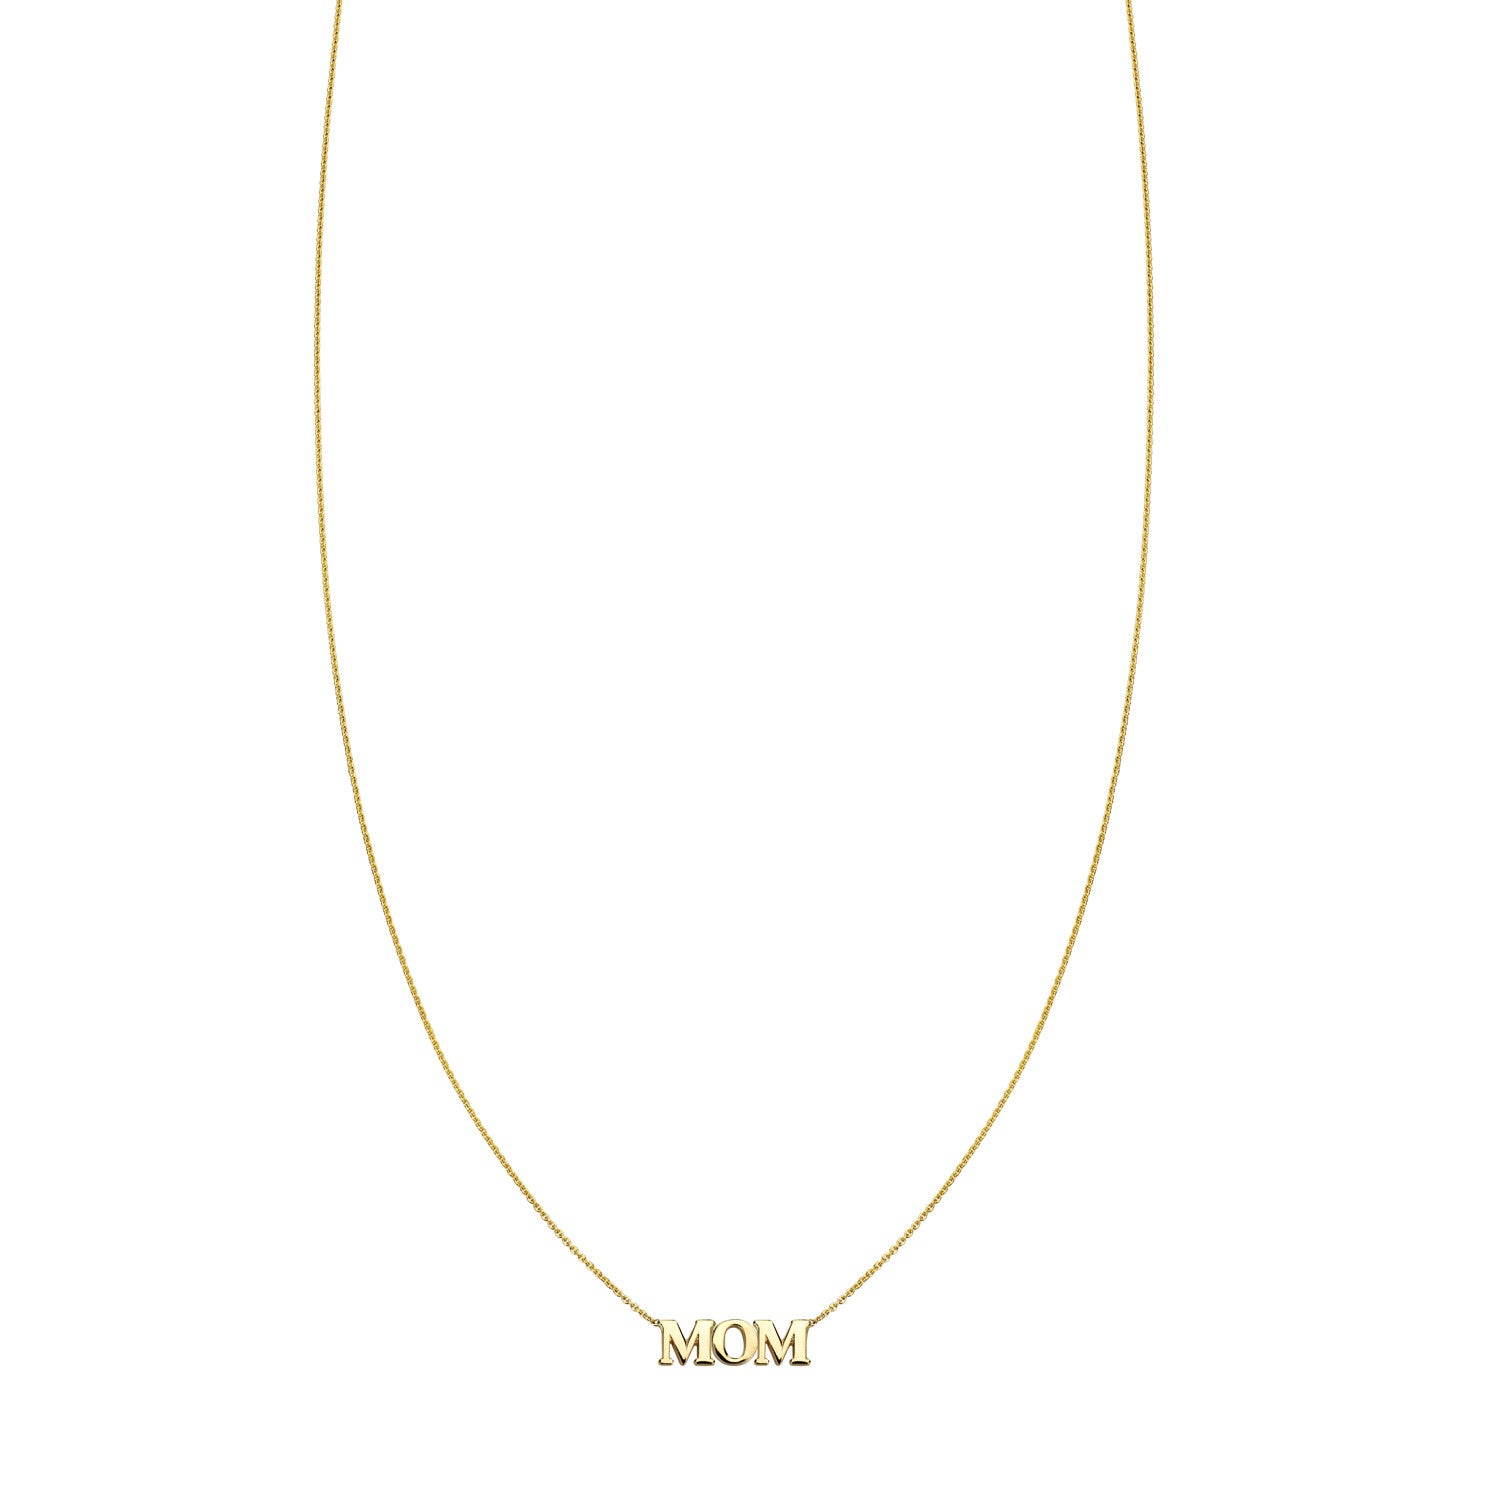 Mom spelling word necklace in gold